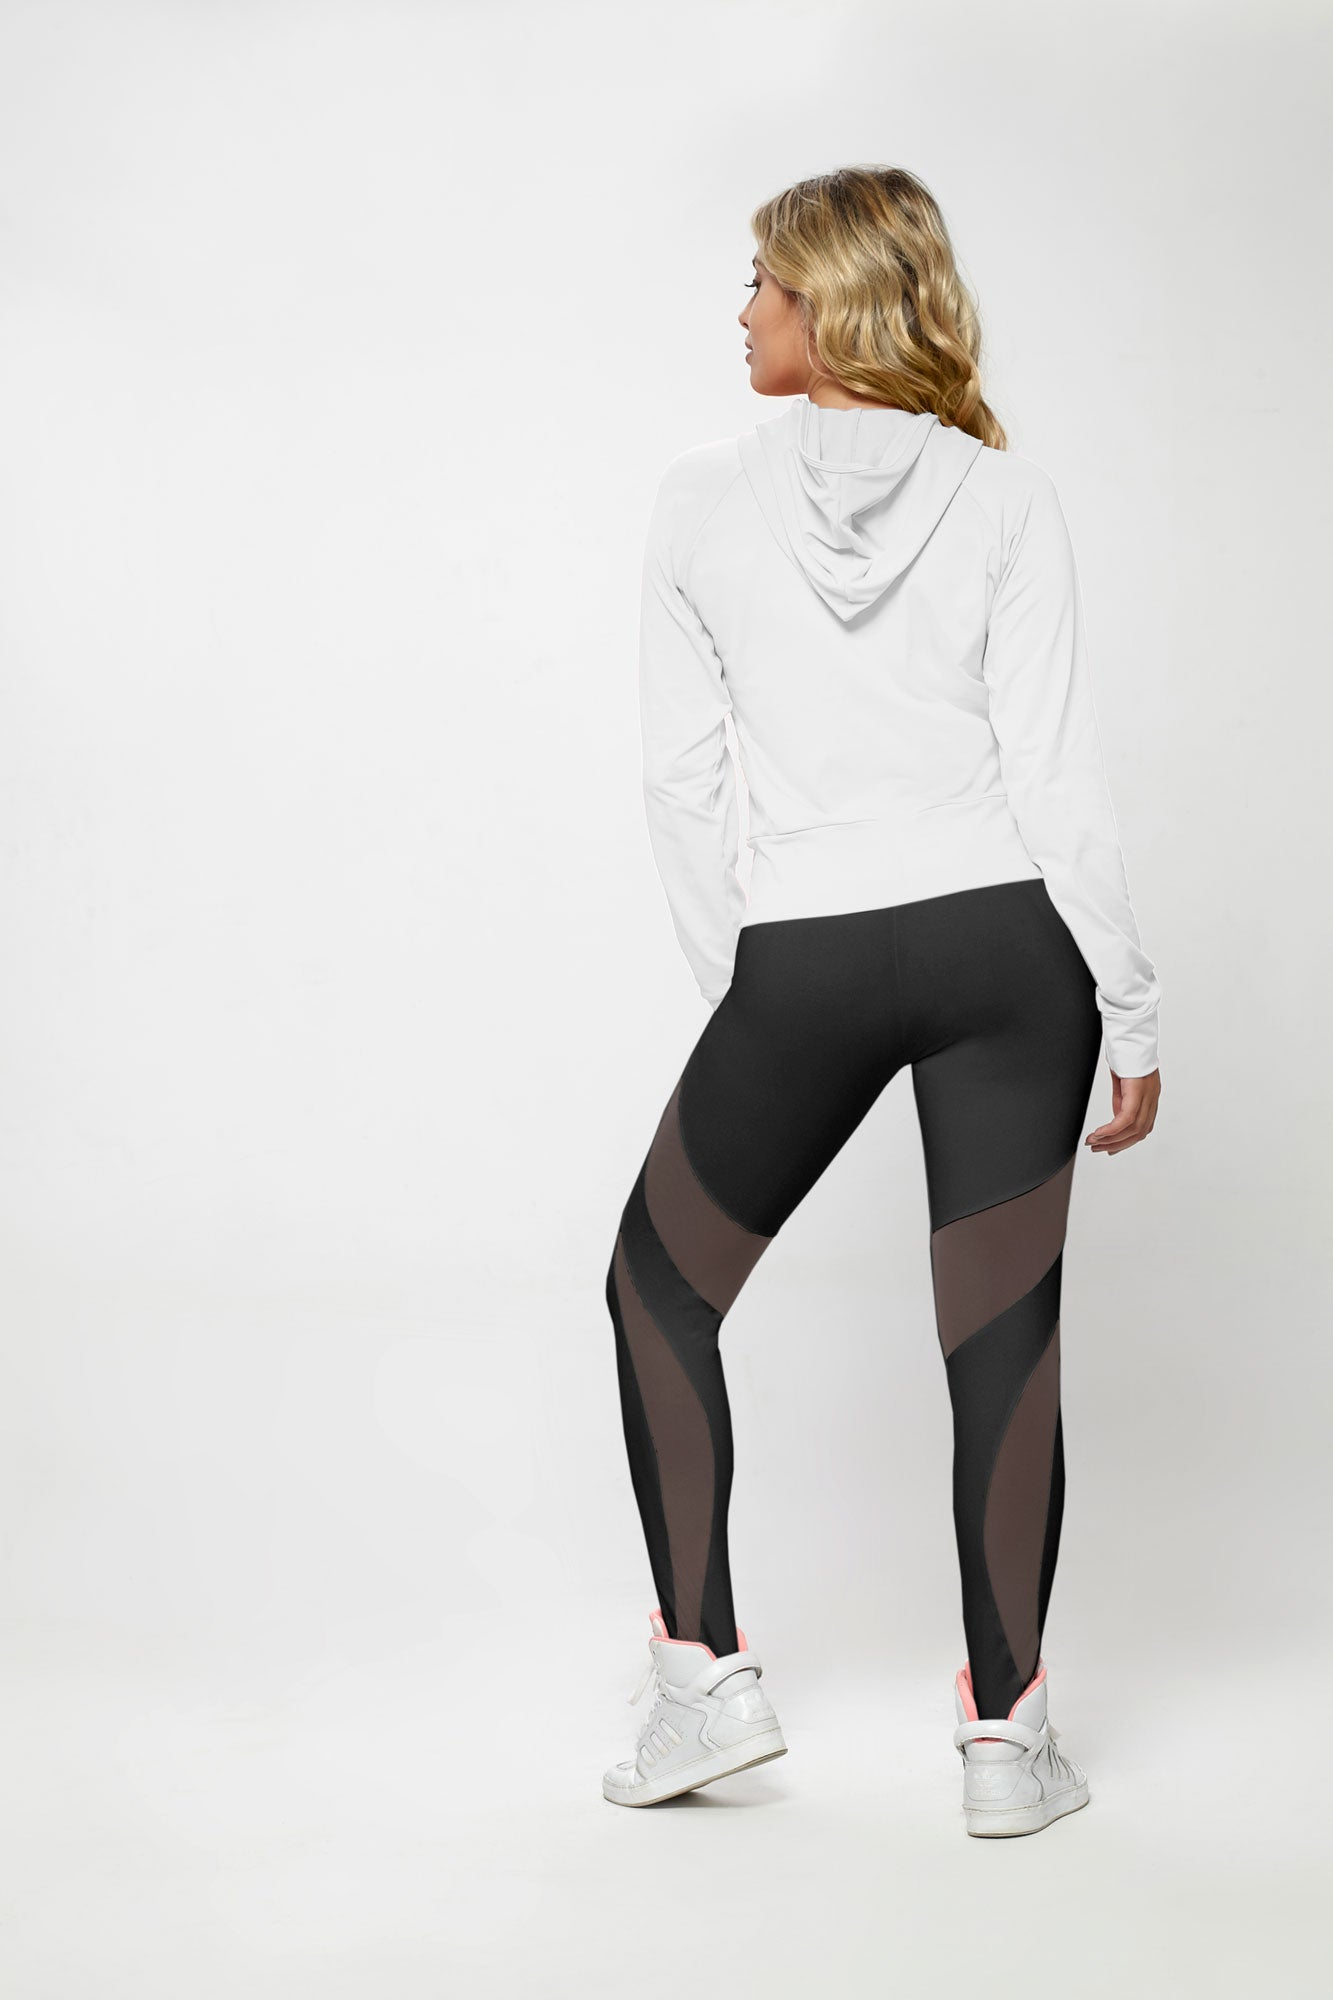 Legging Set - OXYFIT - FitZee